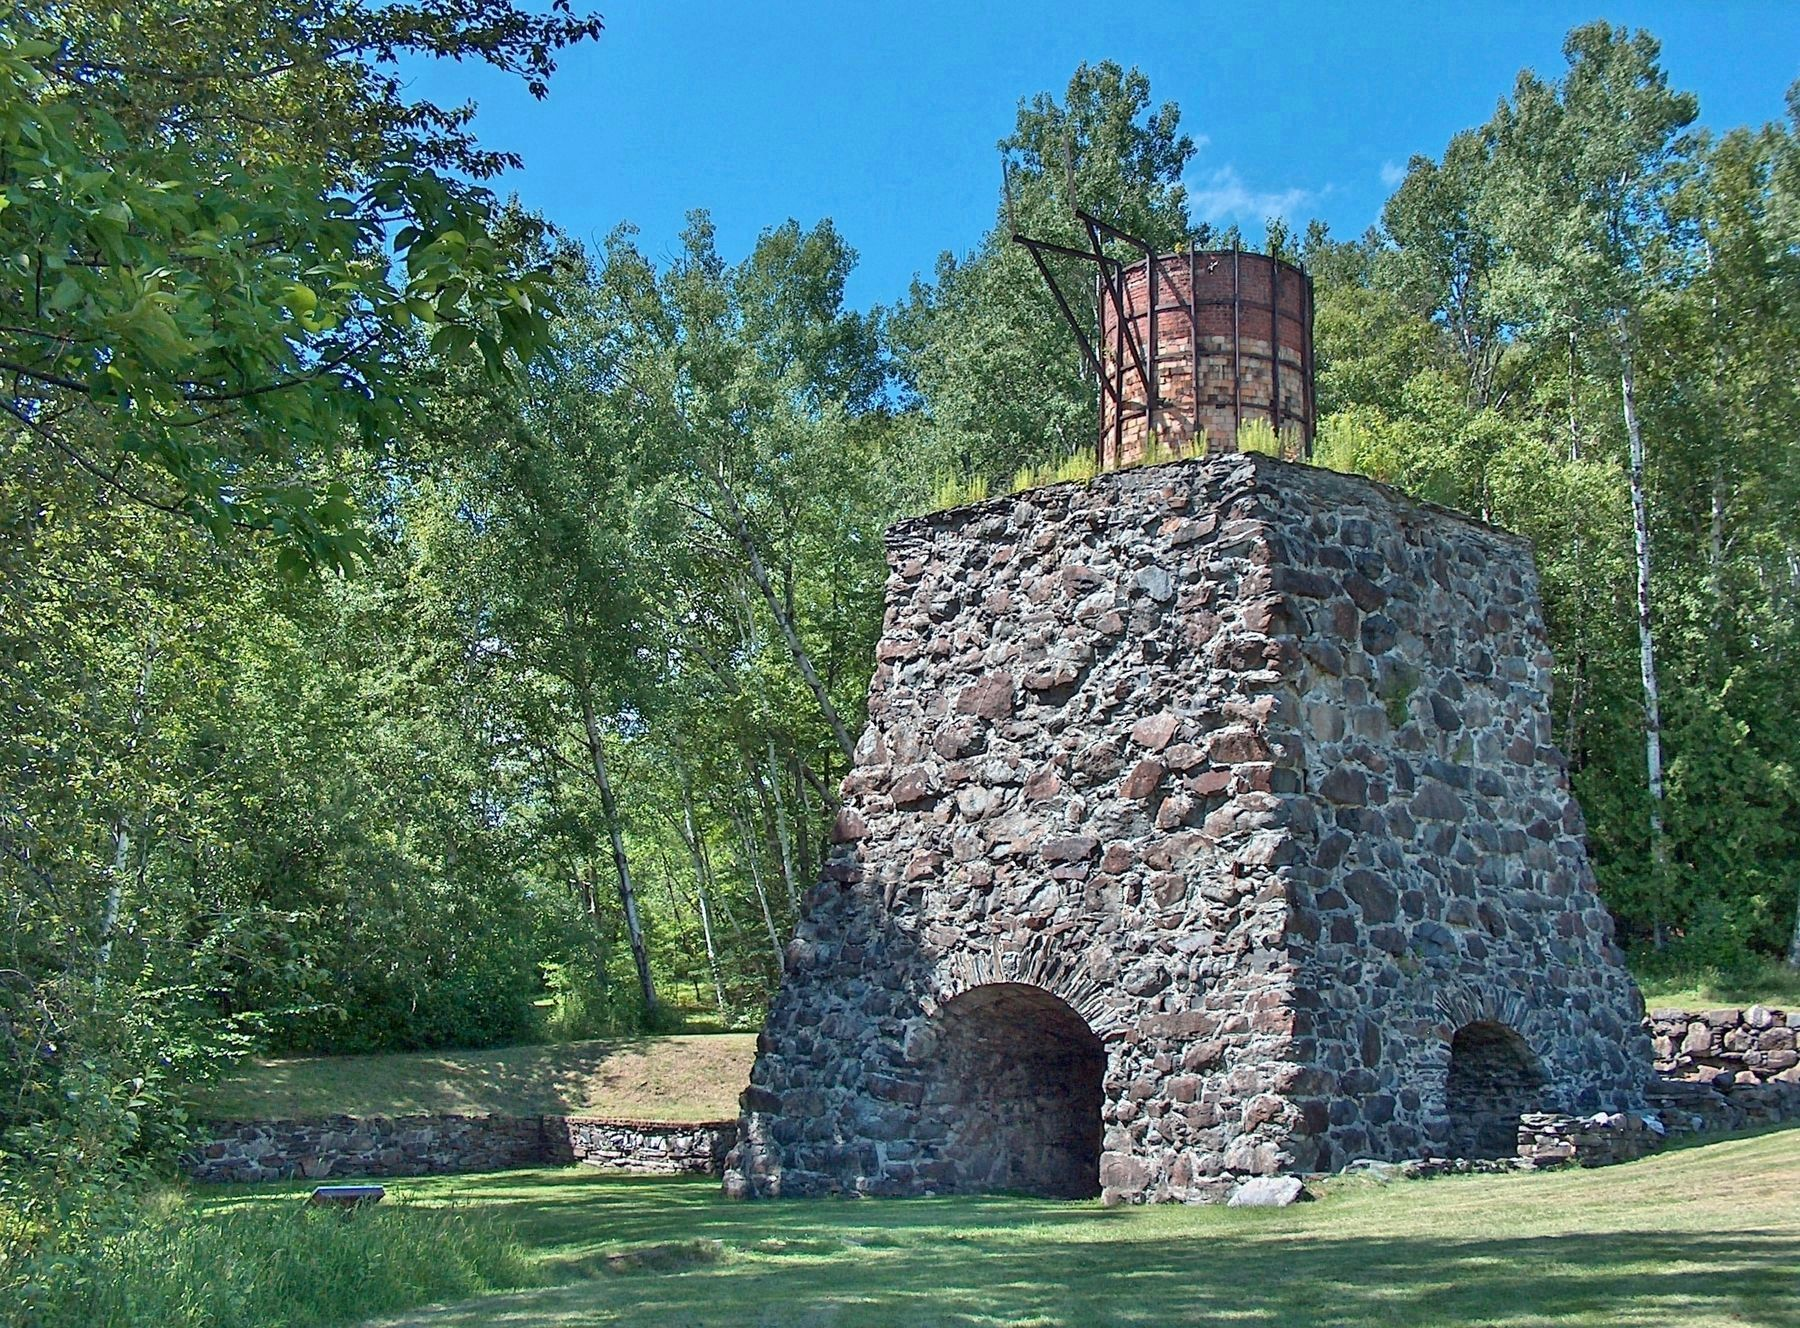 All that remains of Katahdin Iron Works today is the skeletons of a blast furnace and charcoal kiln